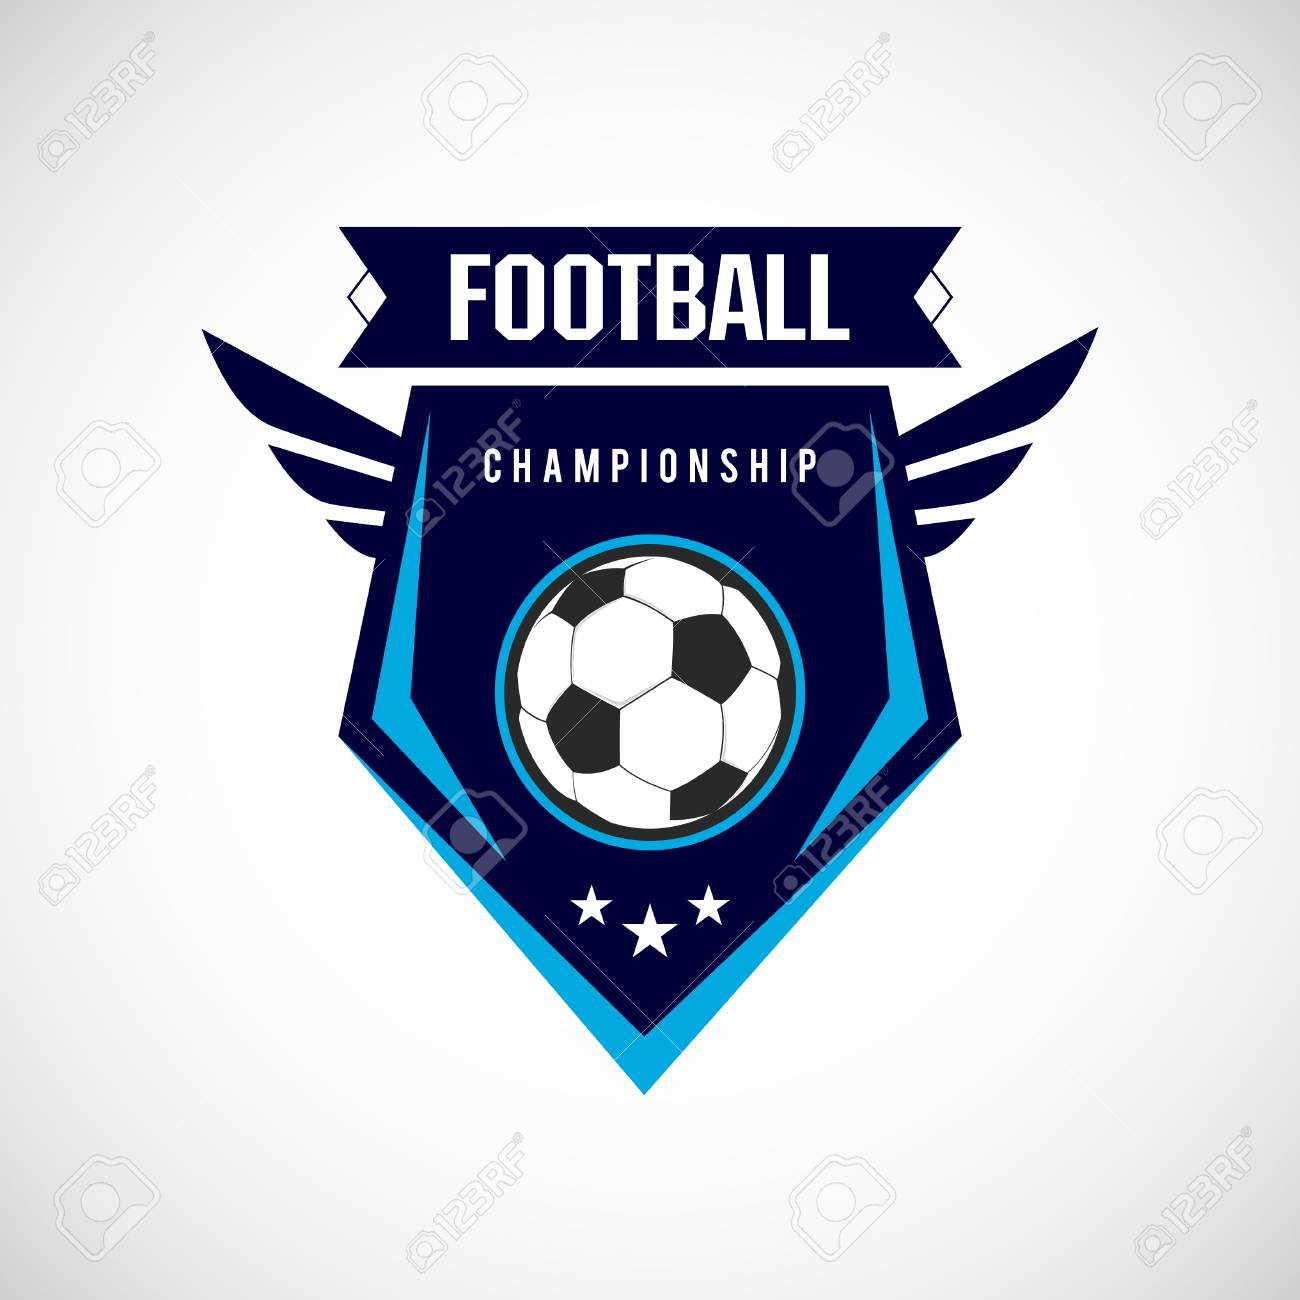 Soccer Football Badge Logo Design Templates Sport Team Identity Royalty Free Cliparts Vectors And Stock Illustration Image 120477399